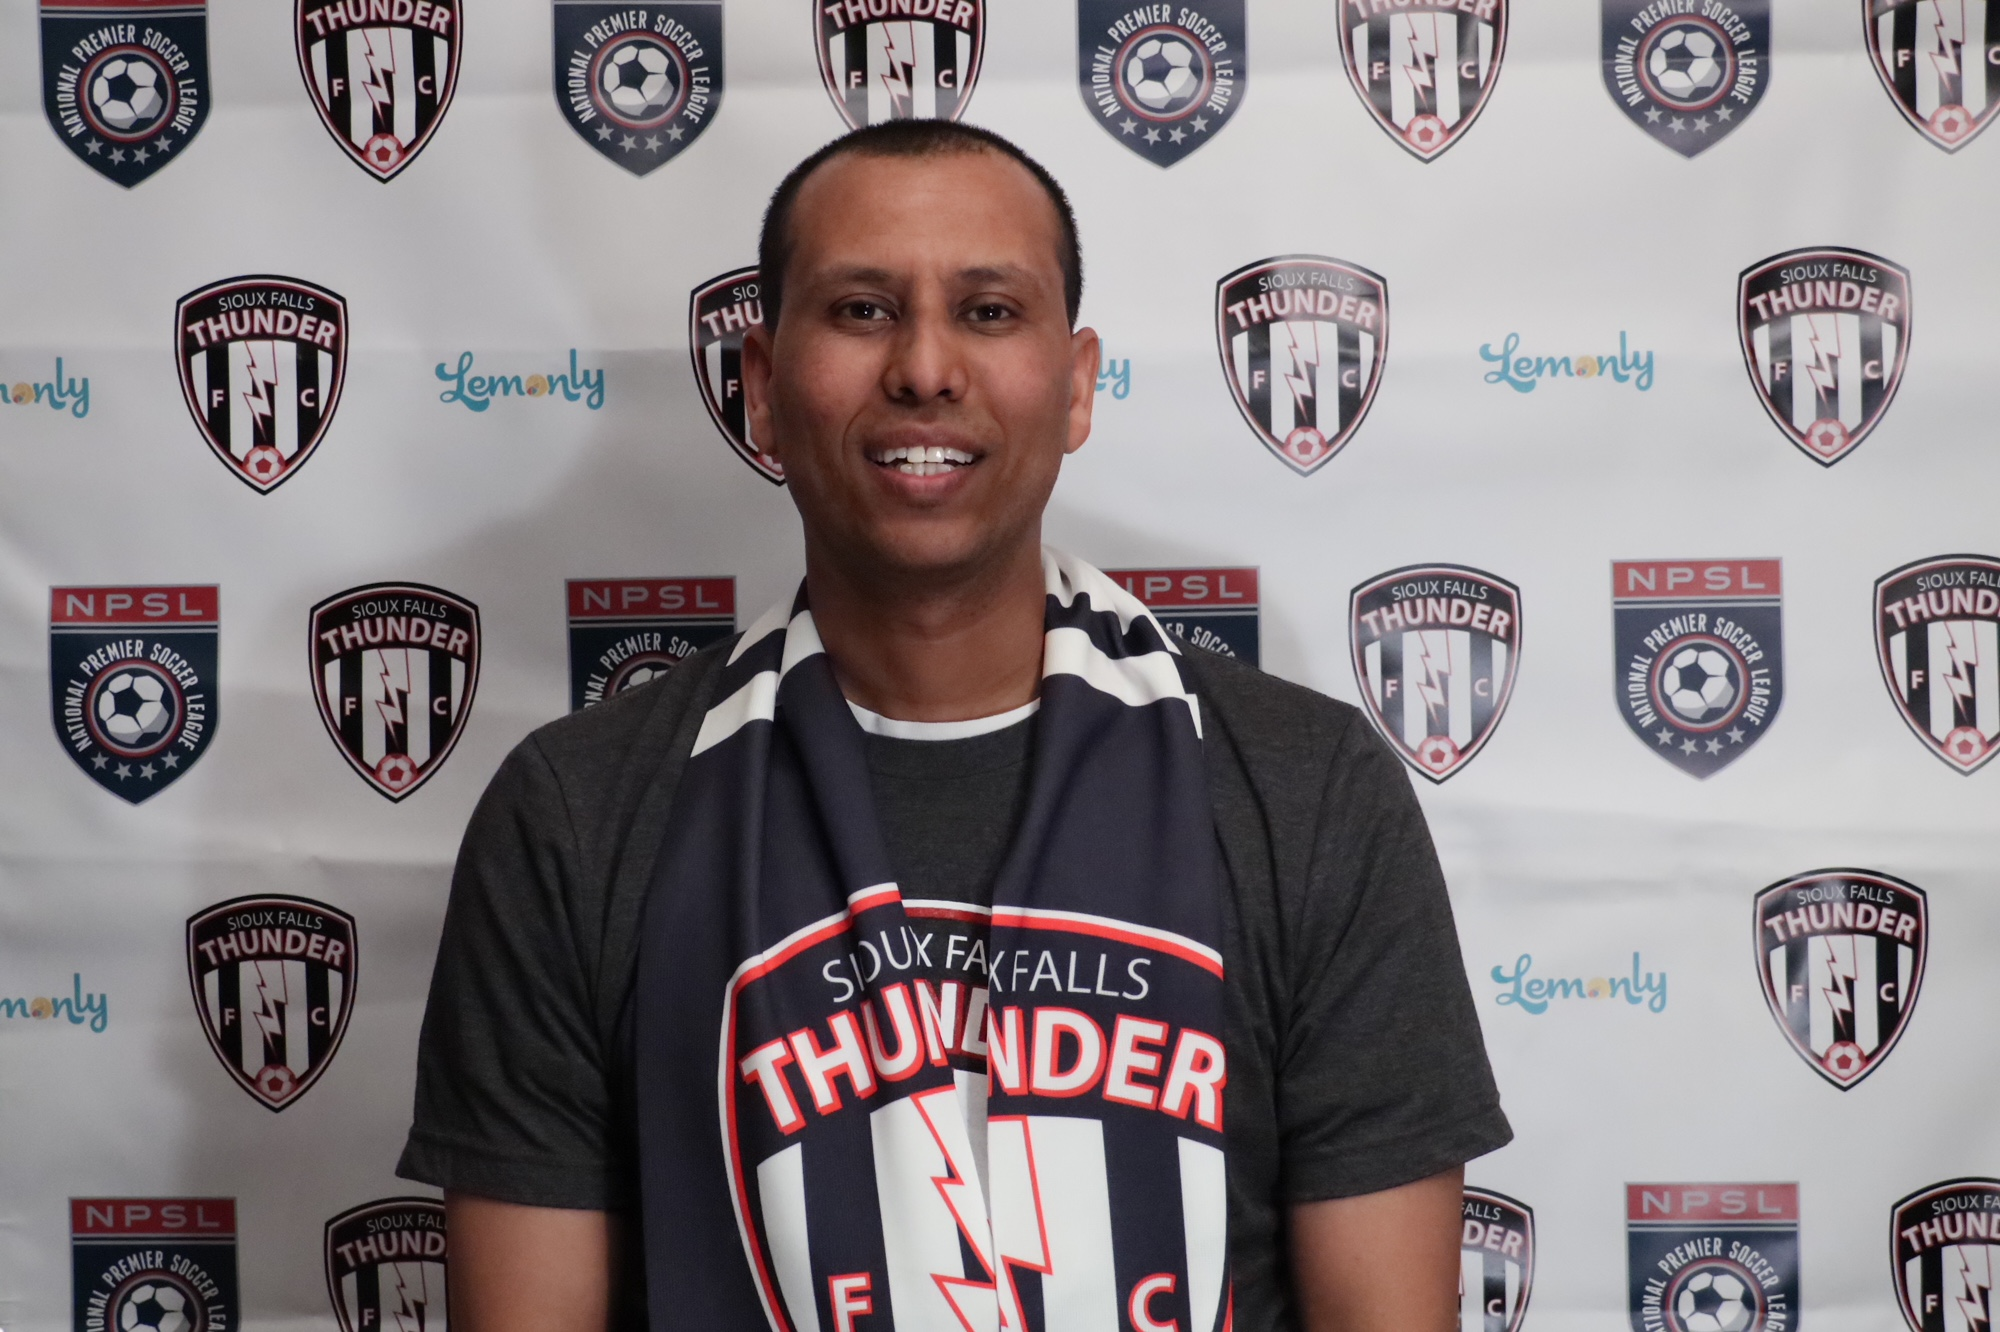 Sioux Falls Thunder FC is proud to announce Mekonnen Afa as the new head coach for the 2018 season. -